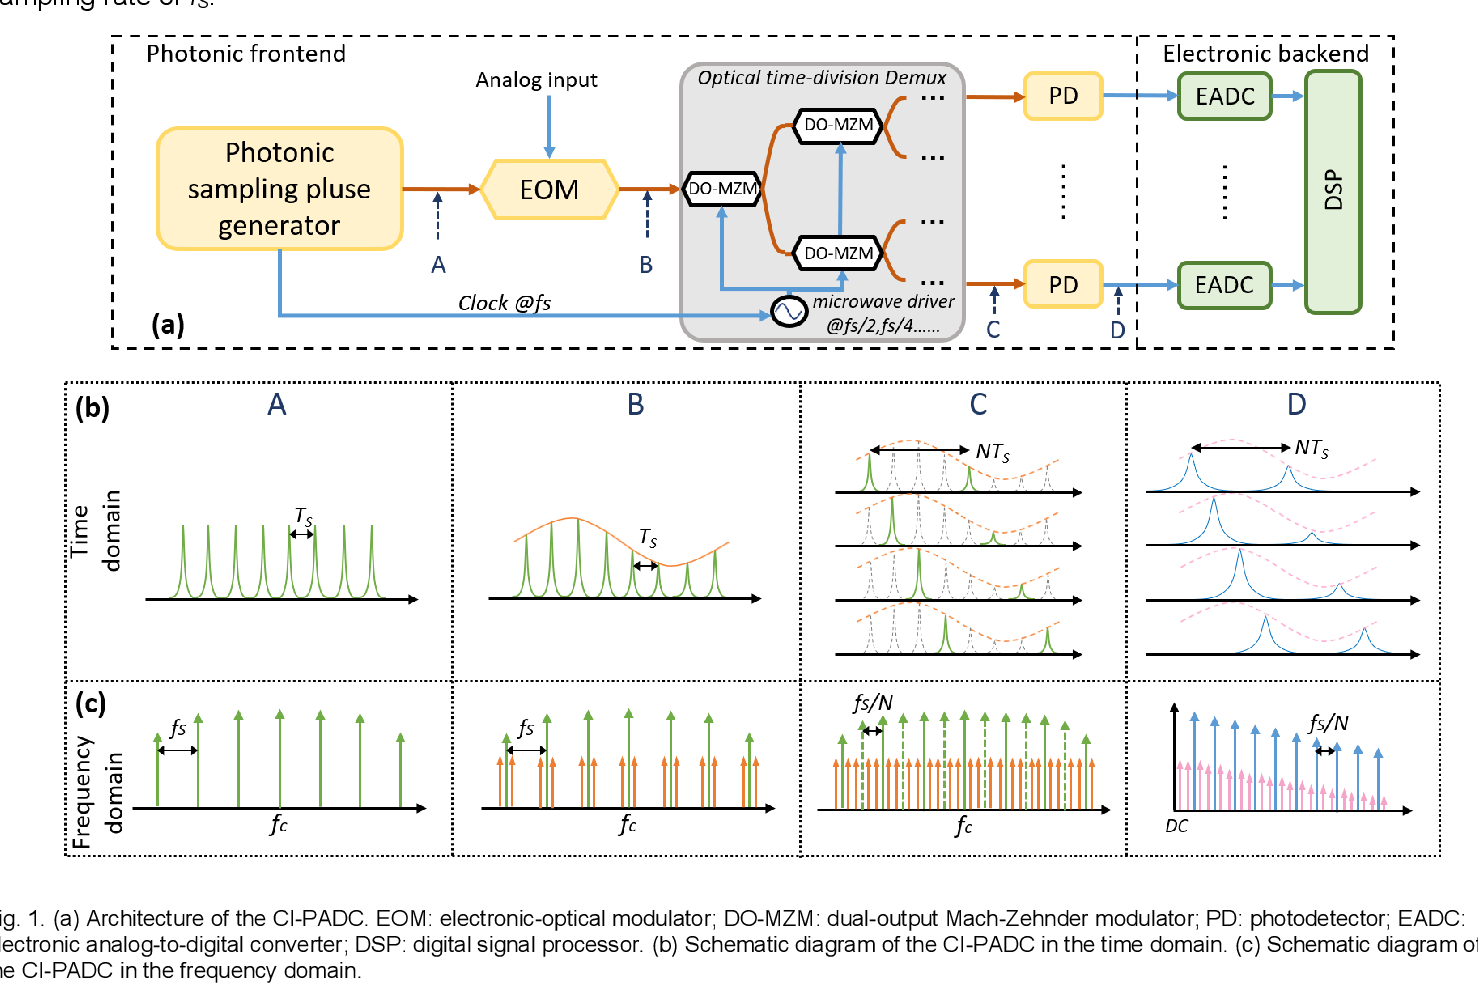 Figure 1 for Characterization of the frequency response of channel-interleaved photonic ADCs based on the optical time-division demultiplexer